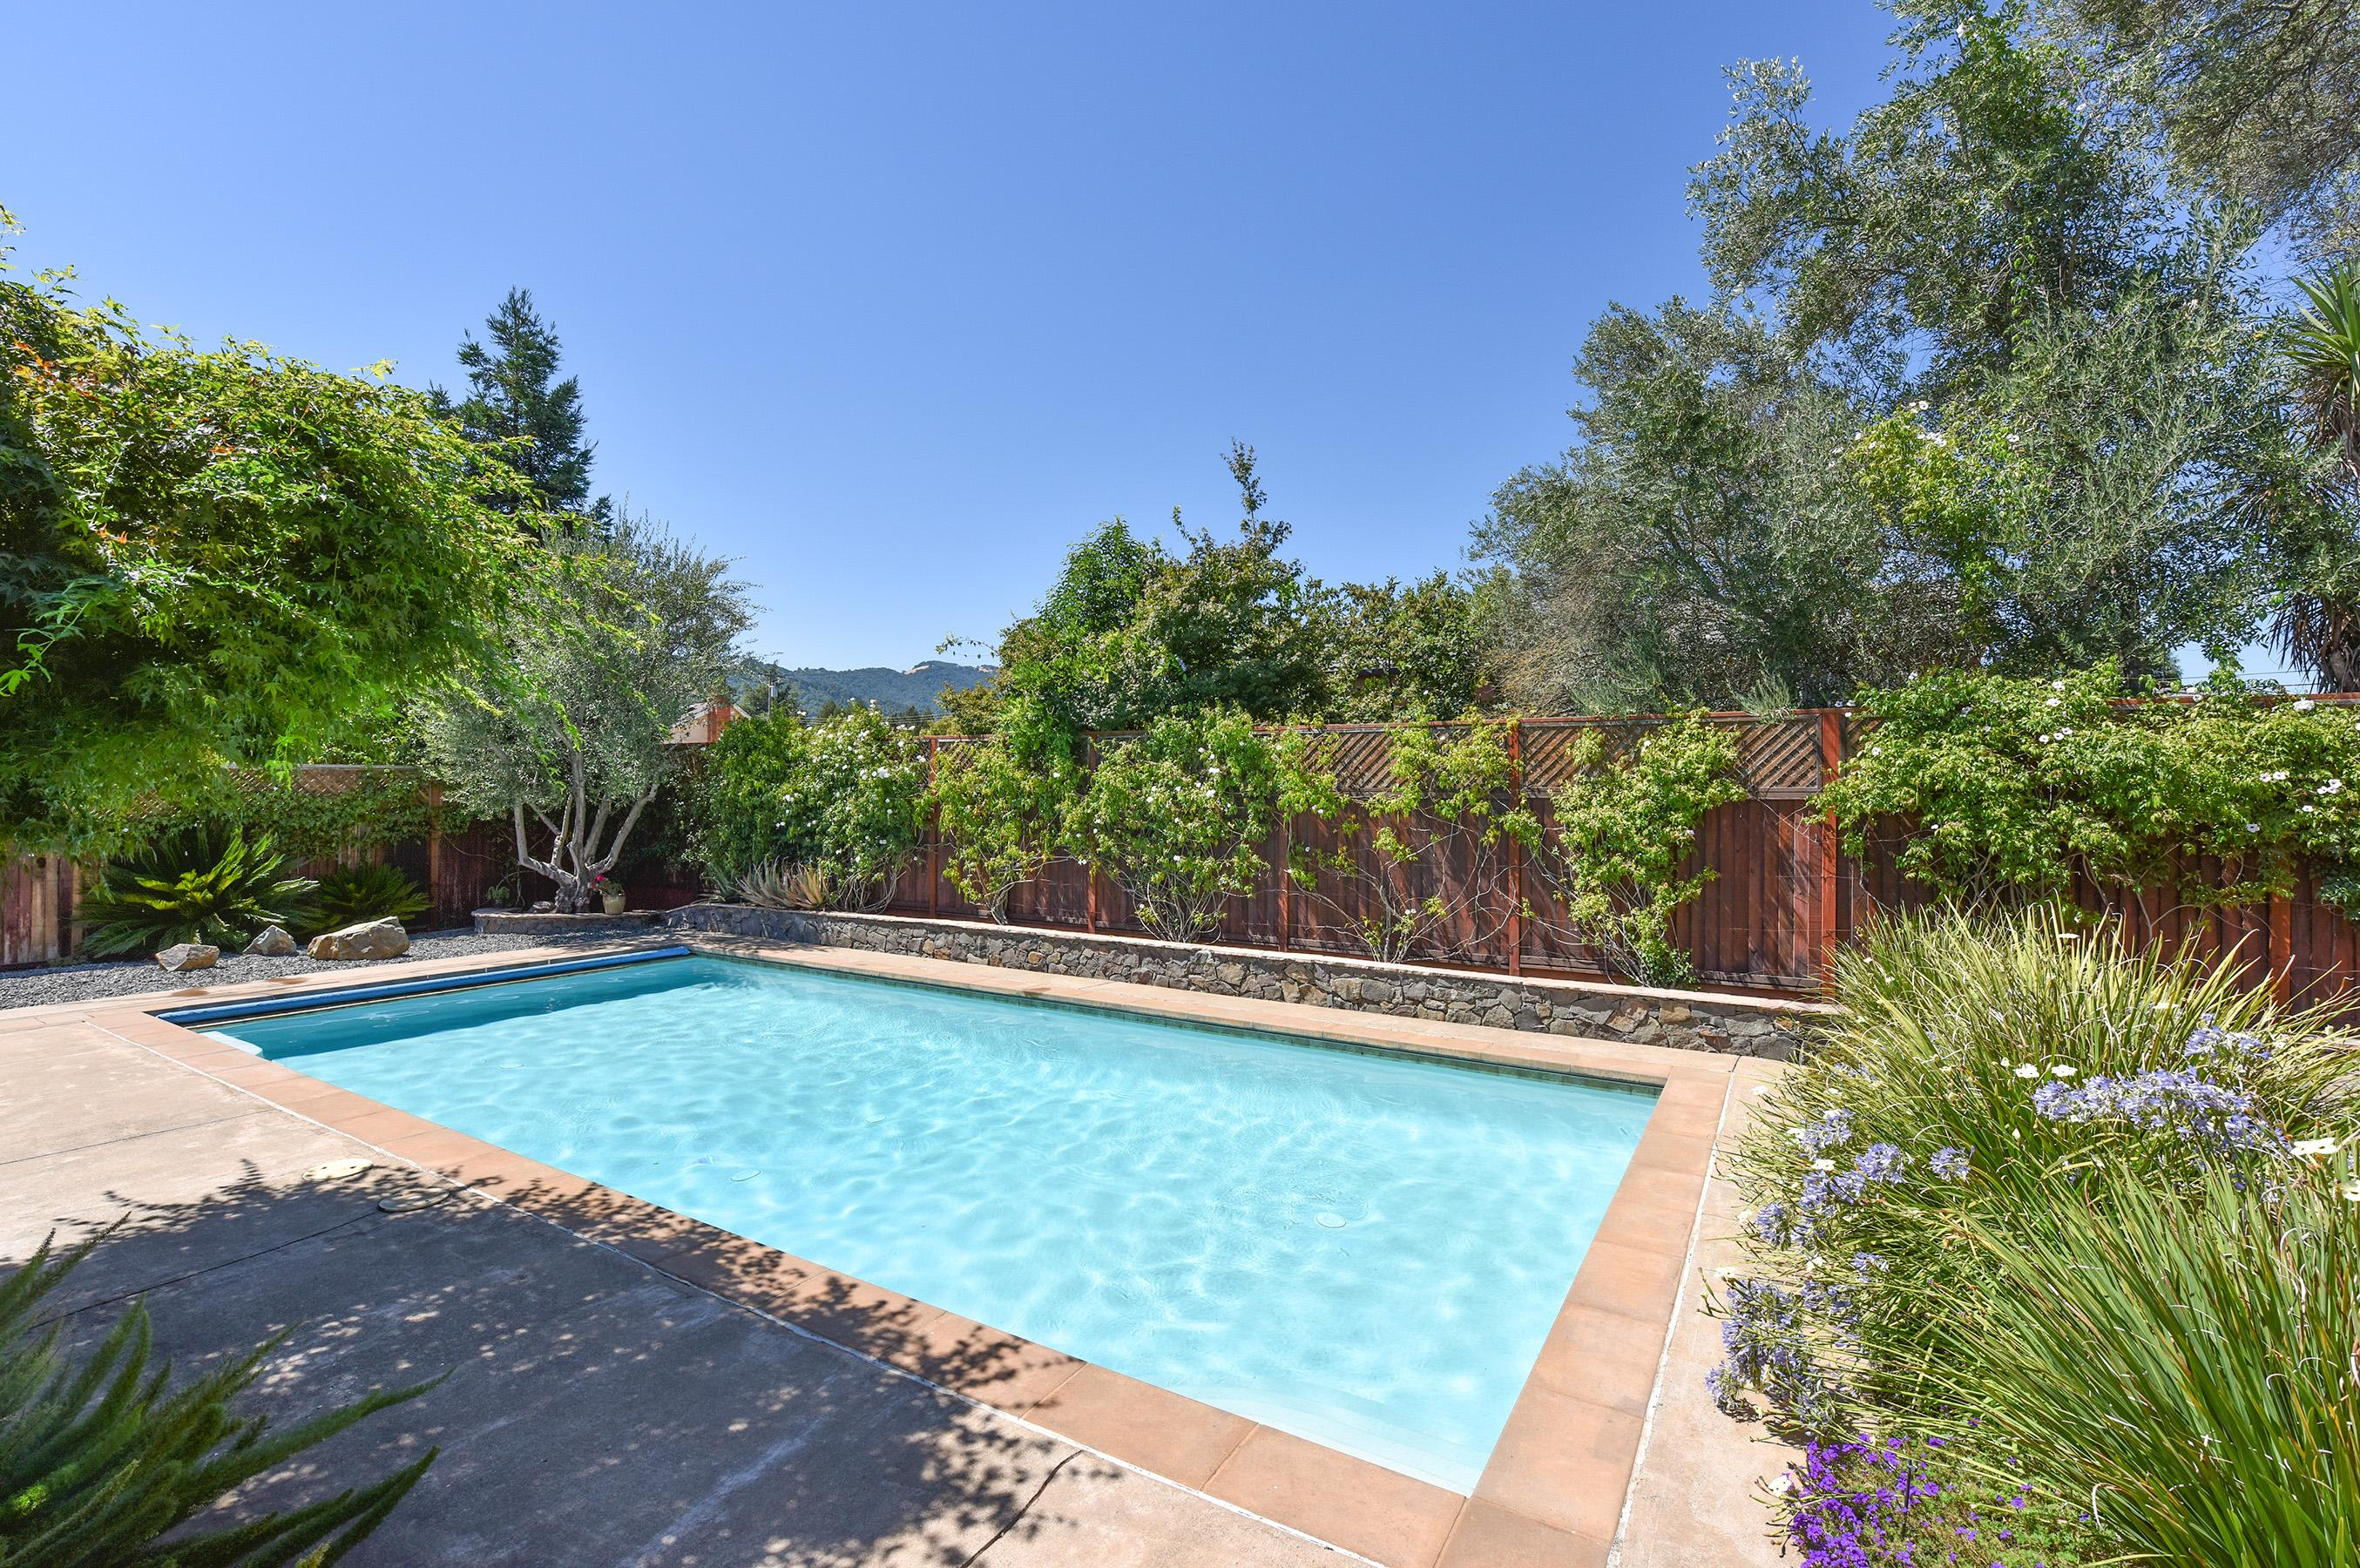 Property Image 2 - Chic Wine Country Getaway near Sonoma Square with Pool